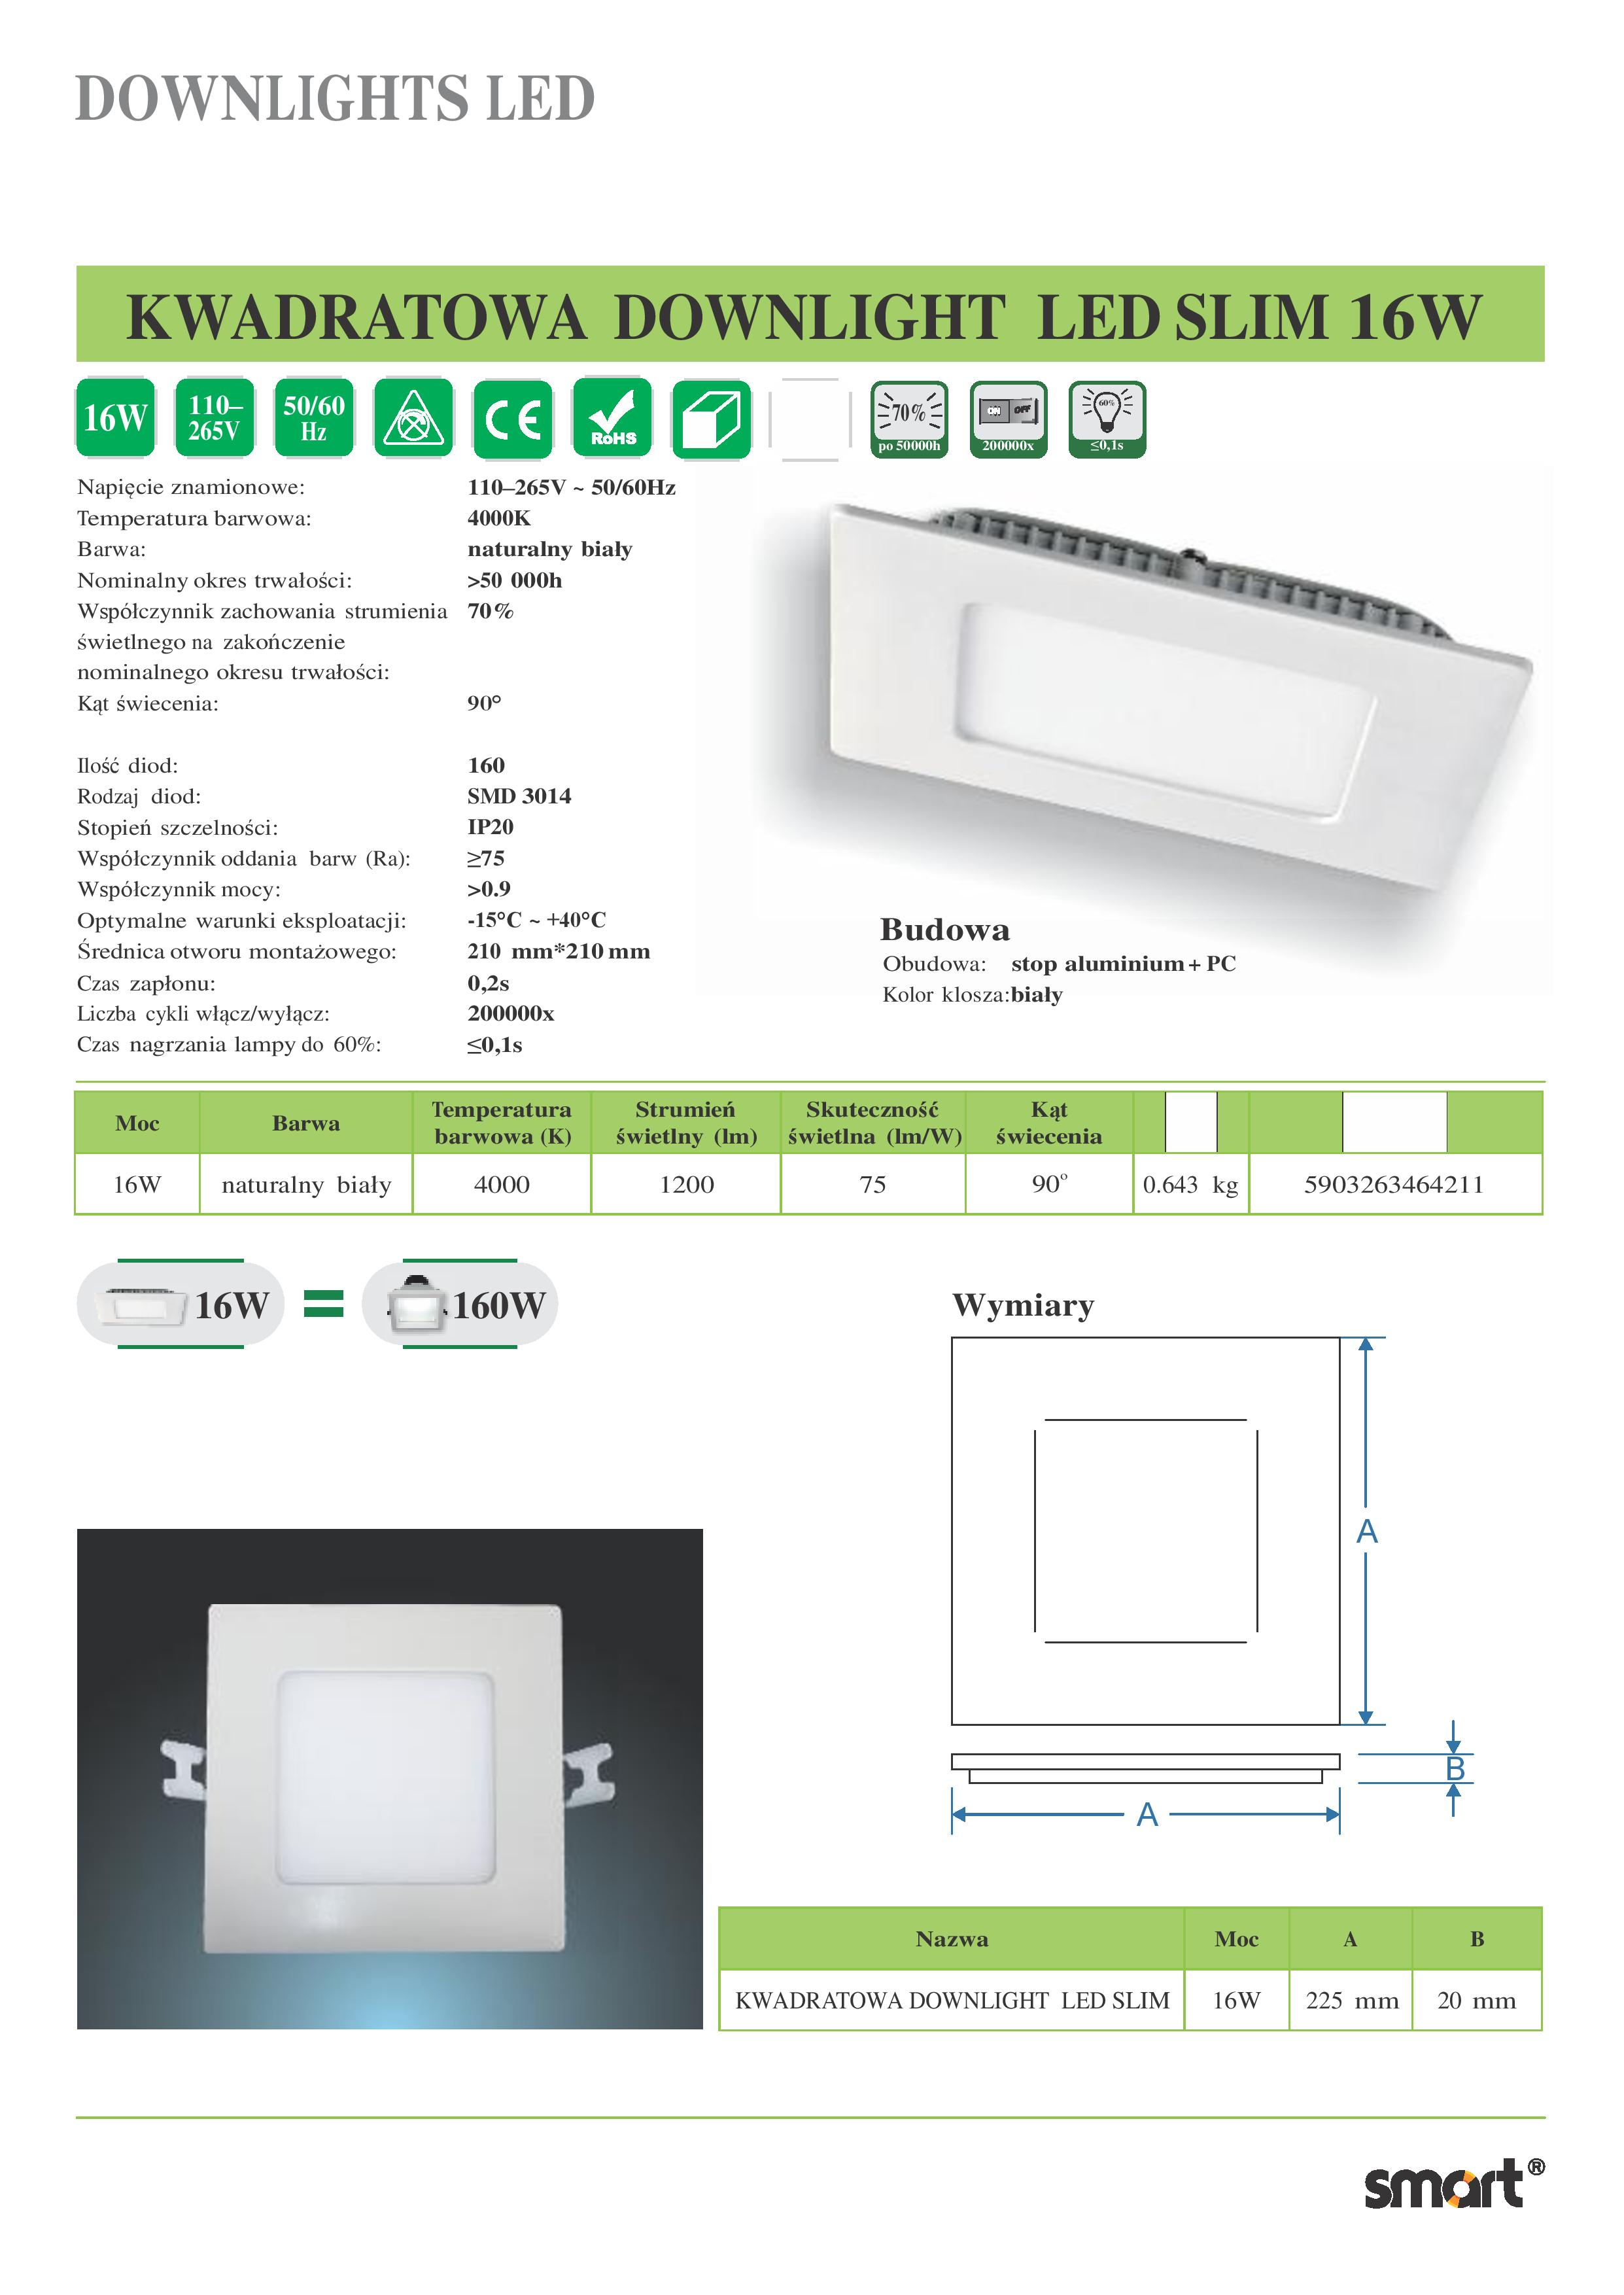 KWADRATOWA-DOWNLIGHT-LED-SLIM-16W